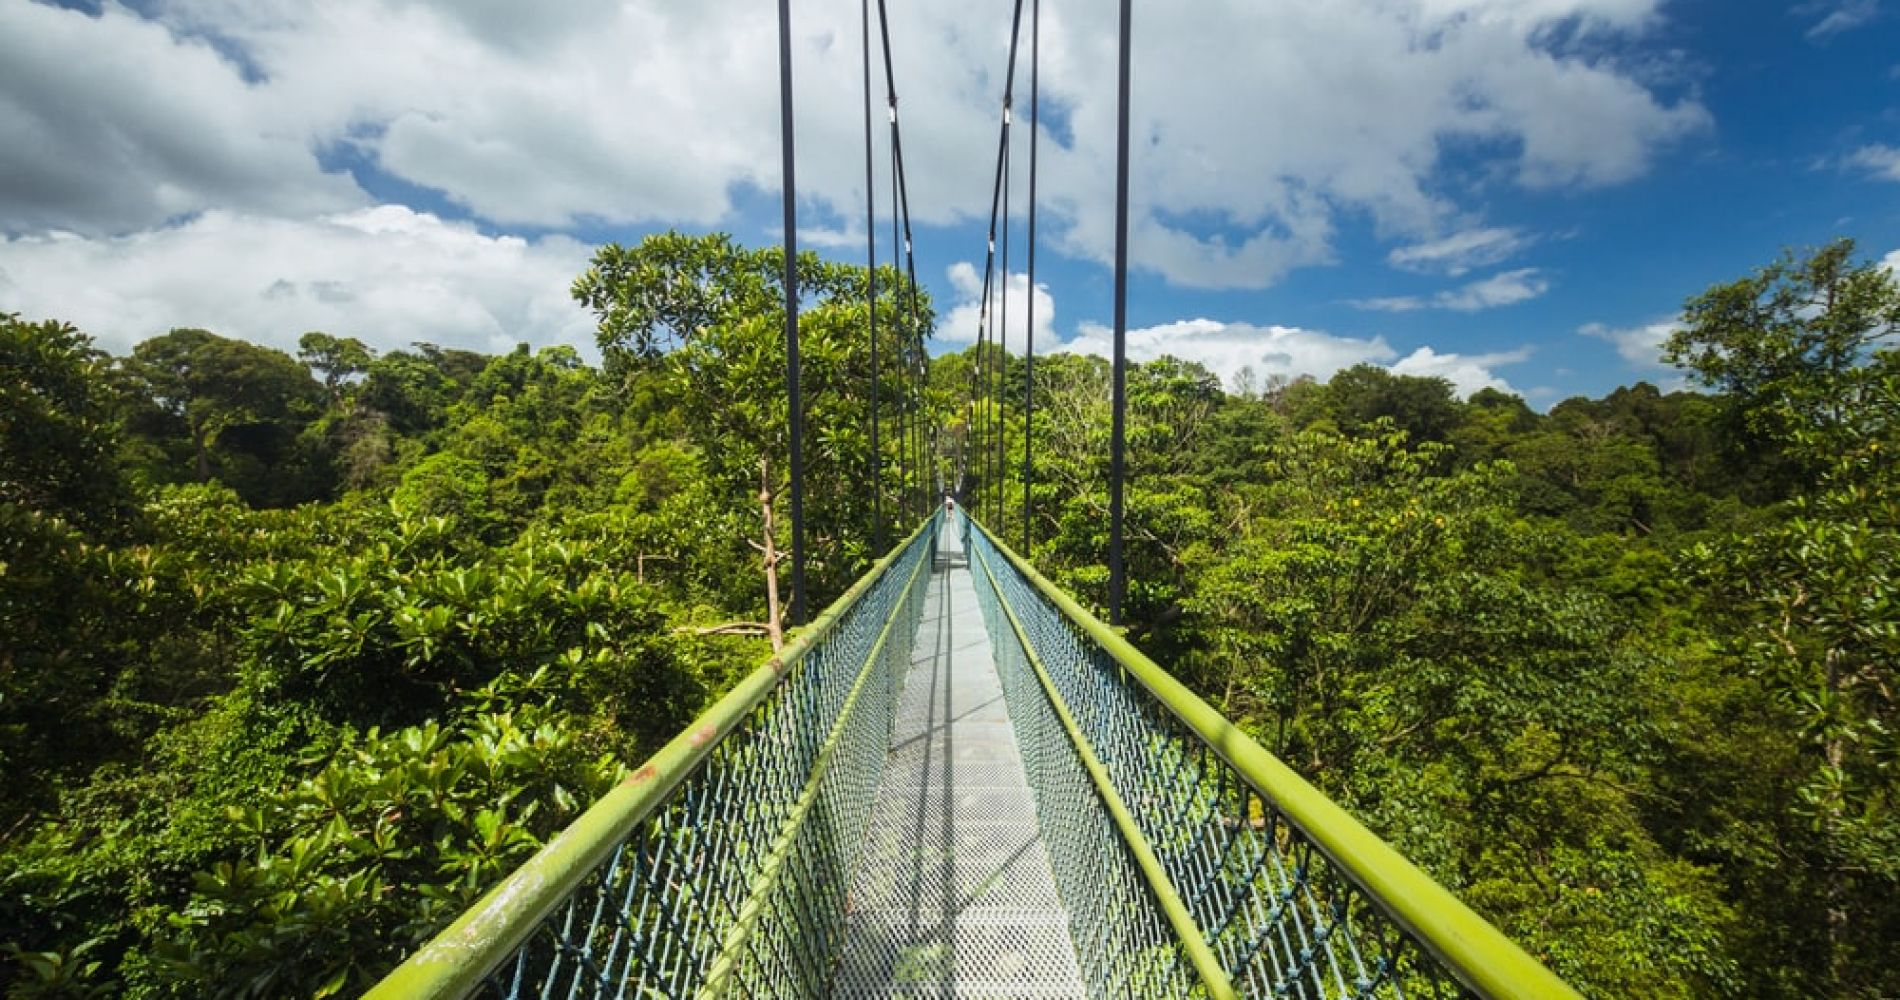 Walk The TreeTop Walk at MacRitchie Reservoir in Singapore